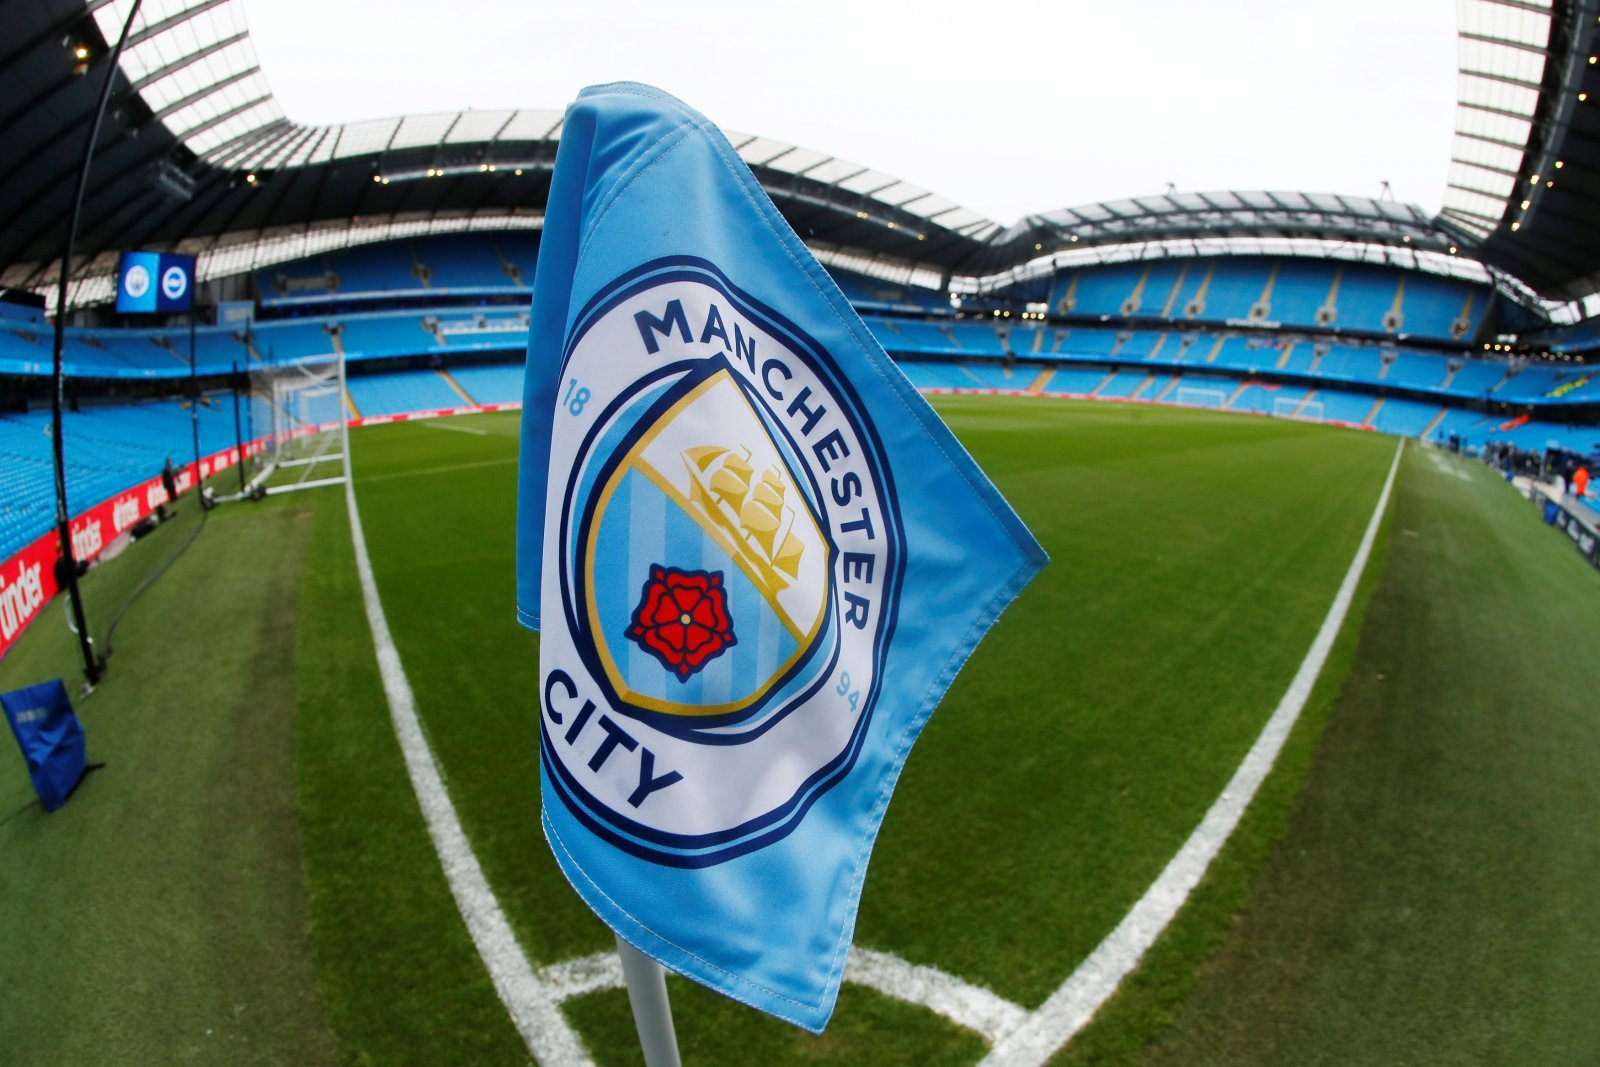 Manchester City: Many fans slate latest FaZe Clan partnership